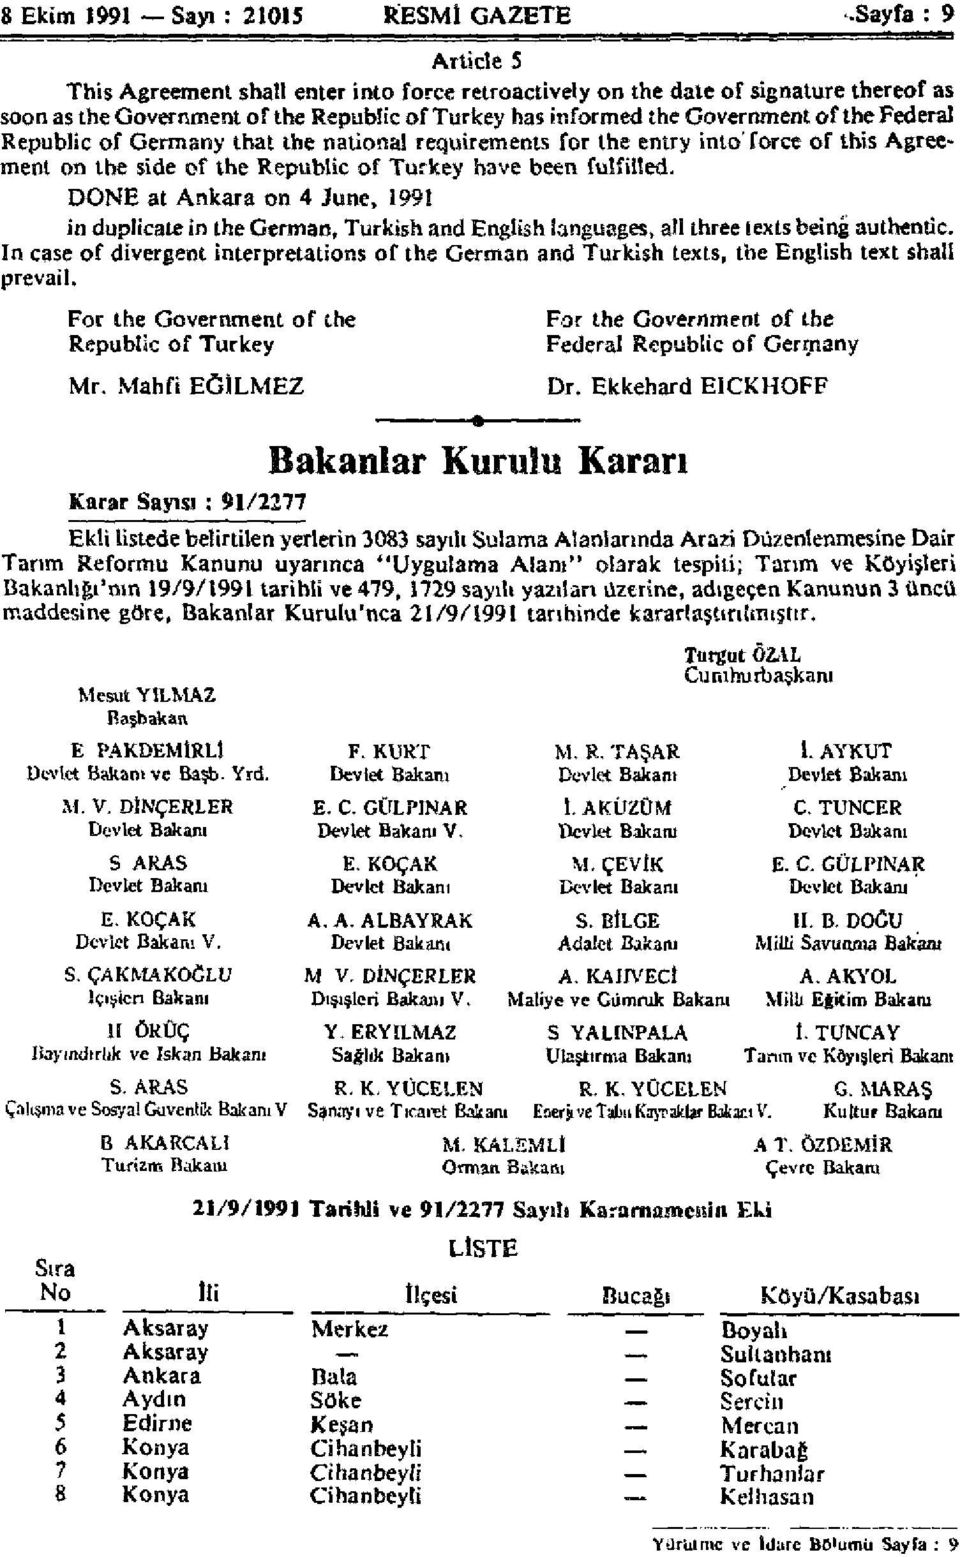 DONE at Ankara on 4 June, 1991 in duplicate in the German, Turkish and English languages, all three texts being authentic.